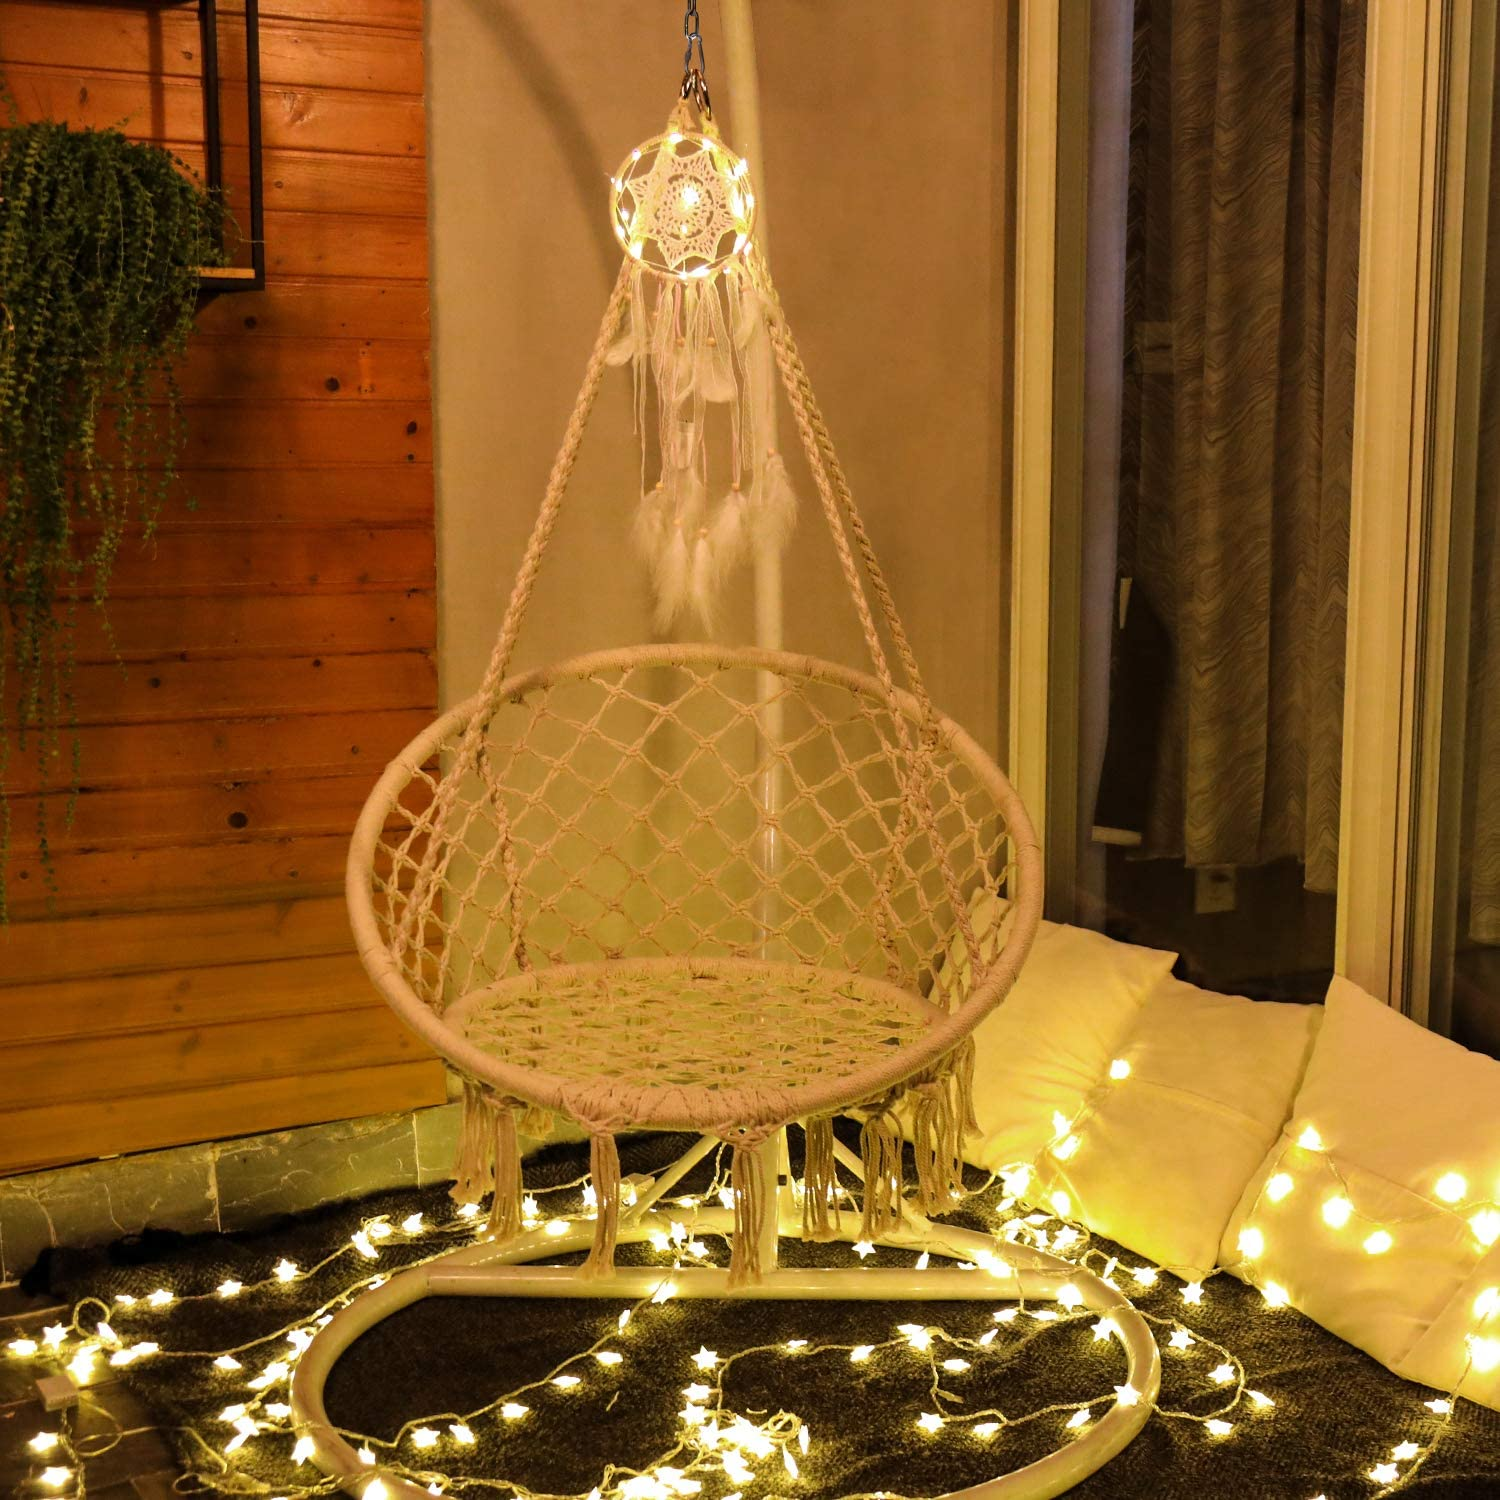 Sonyabecca Hammock Chair With Led Dream Catcher Childrens Adults